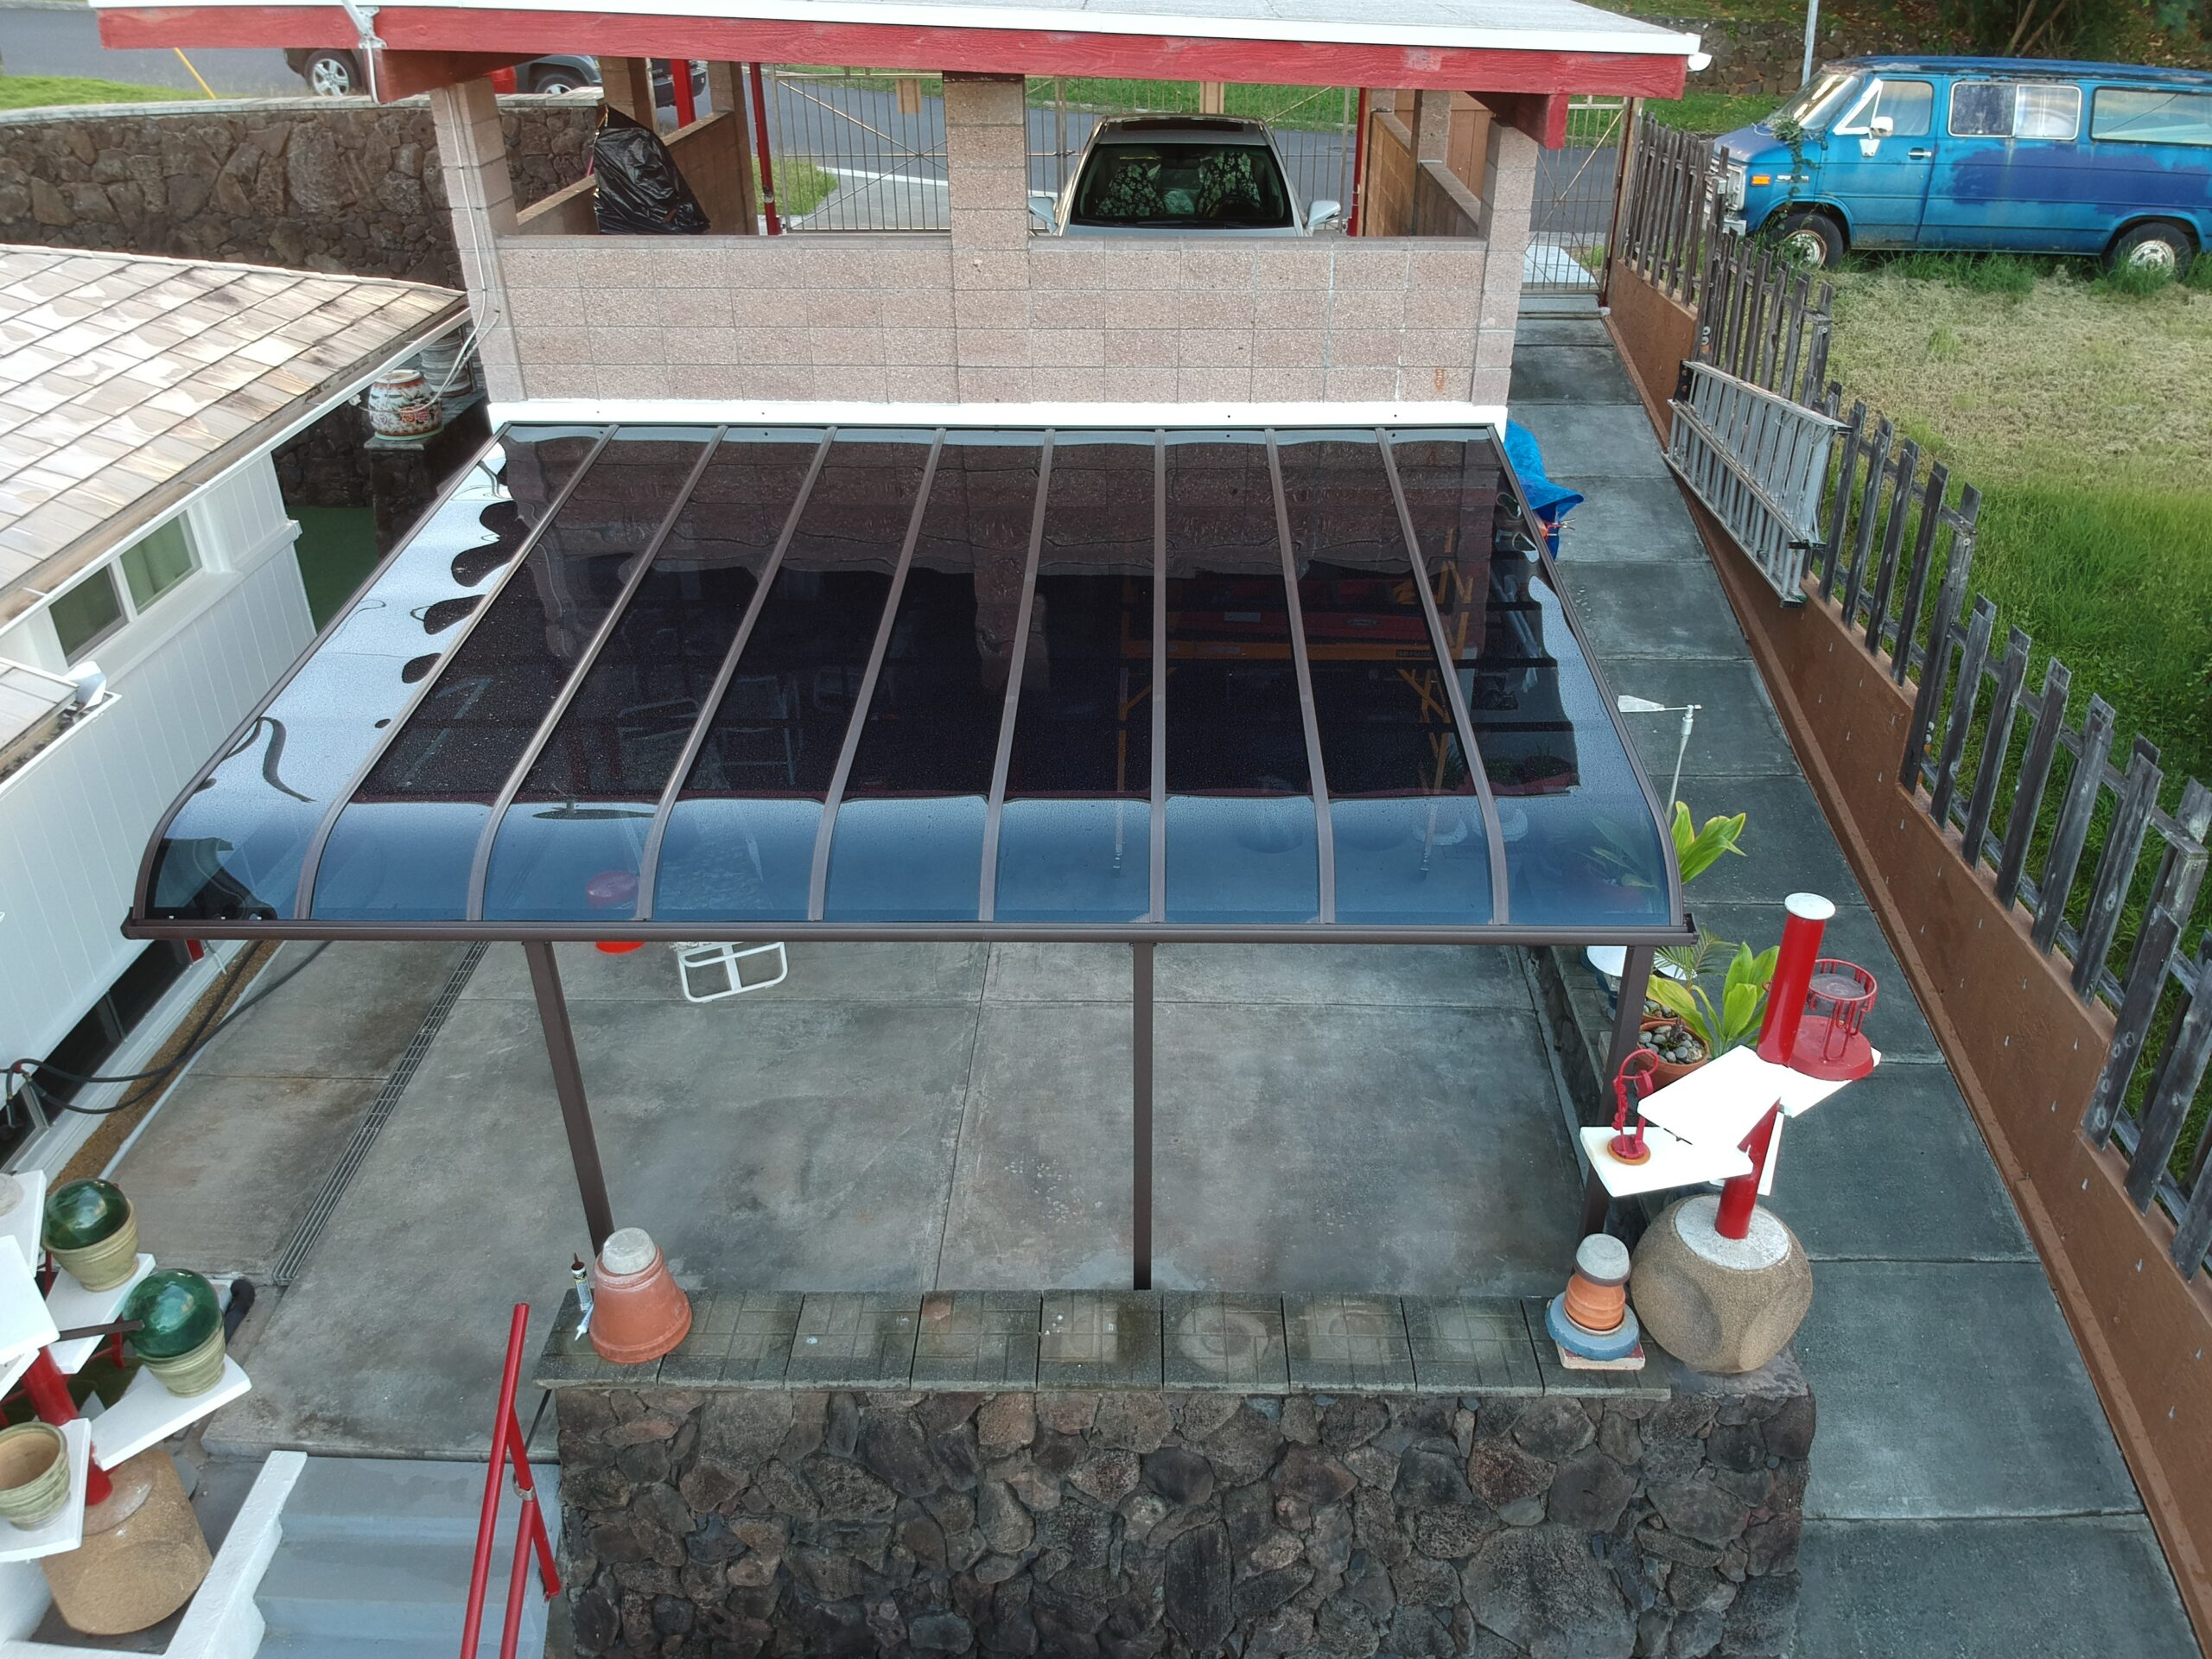 Patio Cover in dark polycarbonate panel and a brown frame, carports hawaii.com